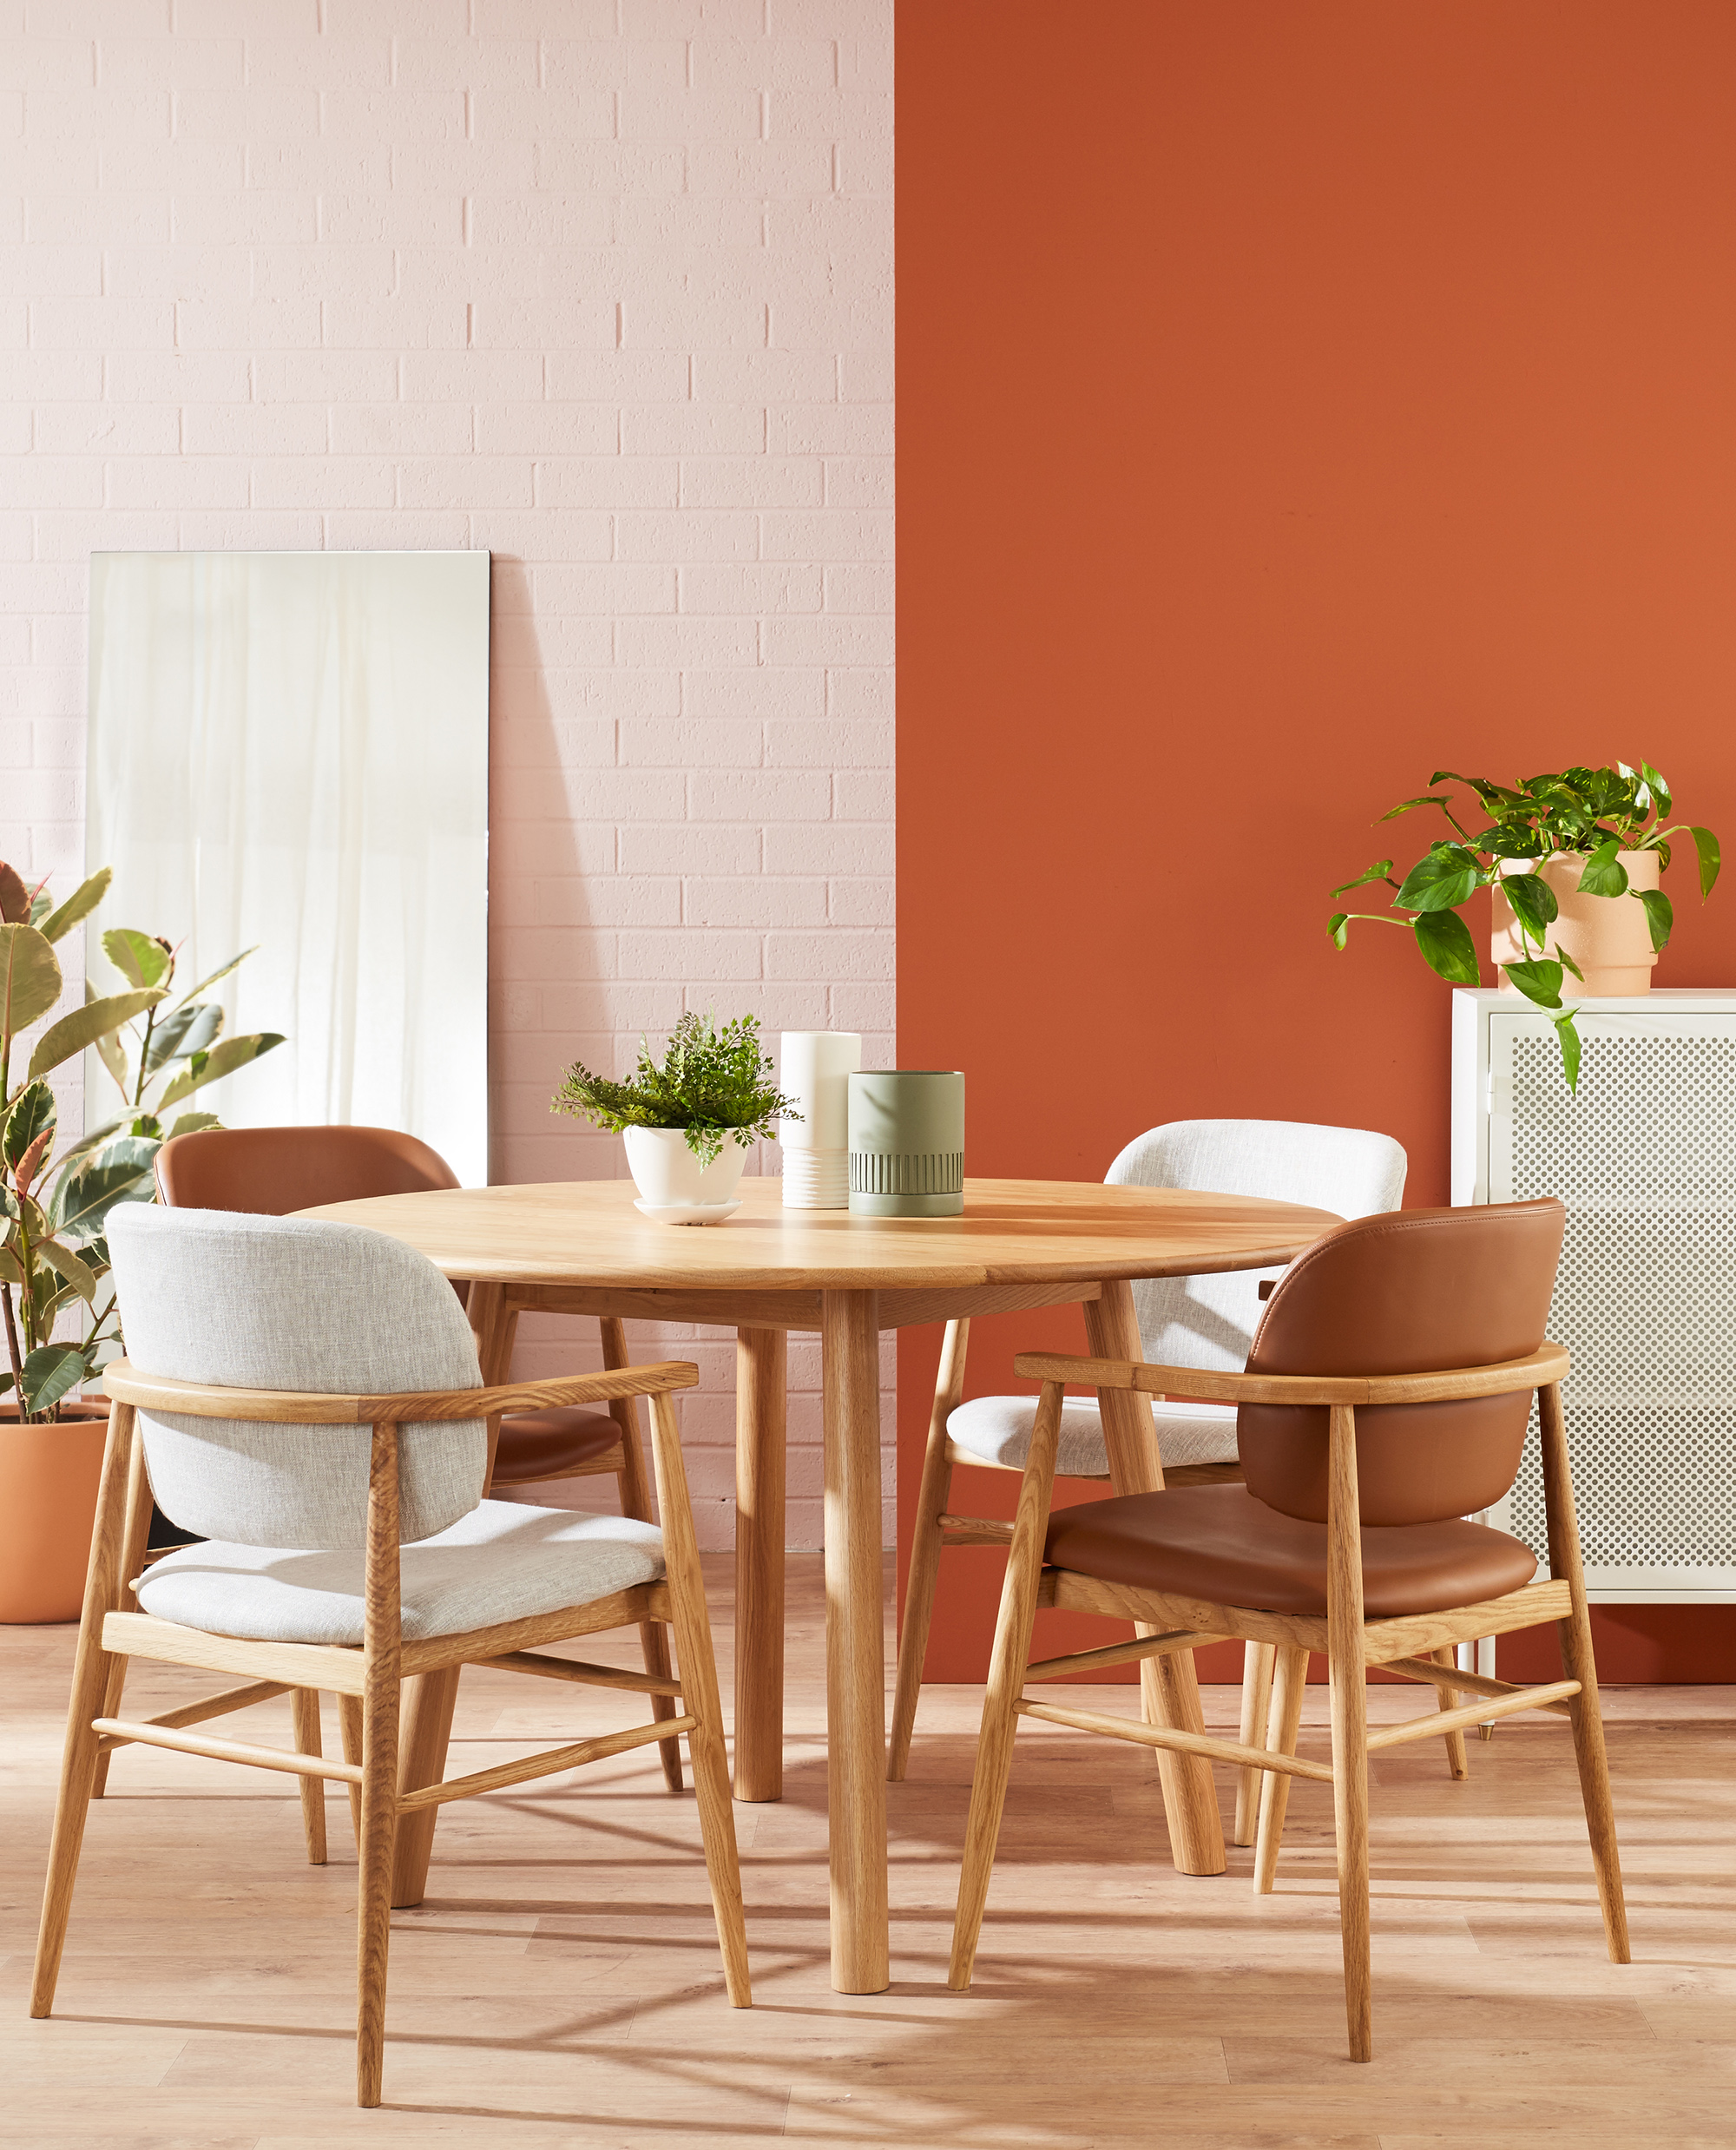 Finland dining table from Life Interiors